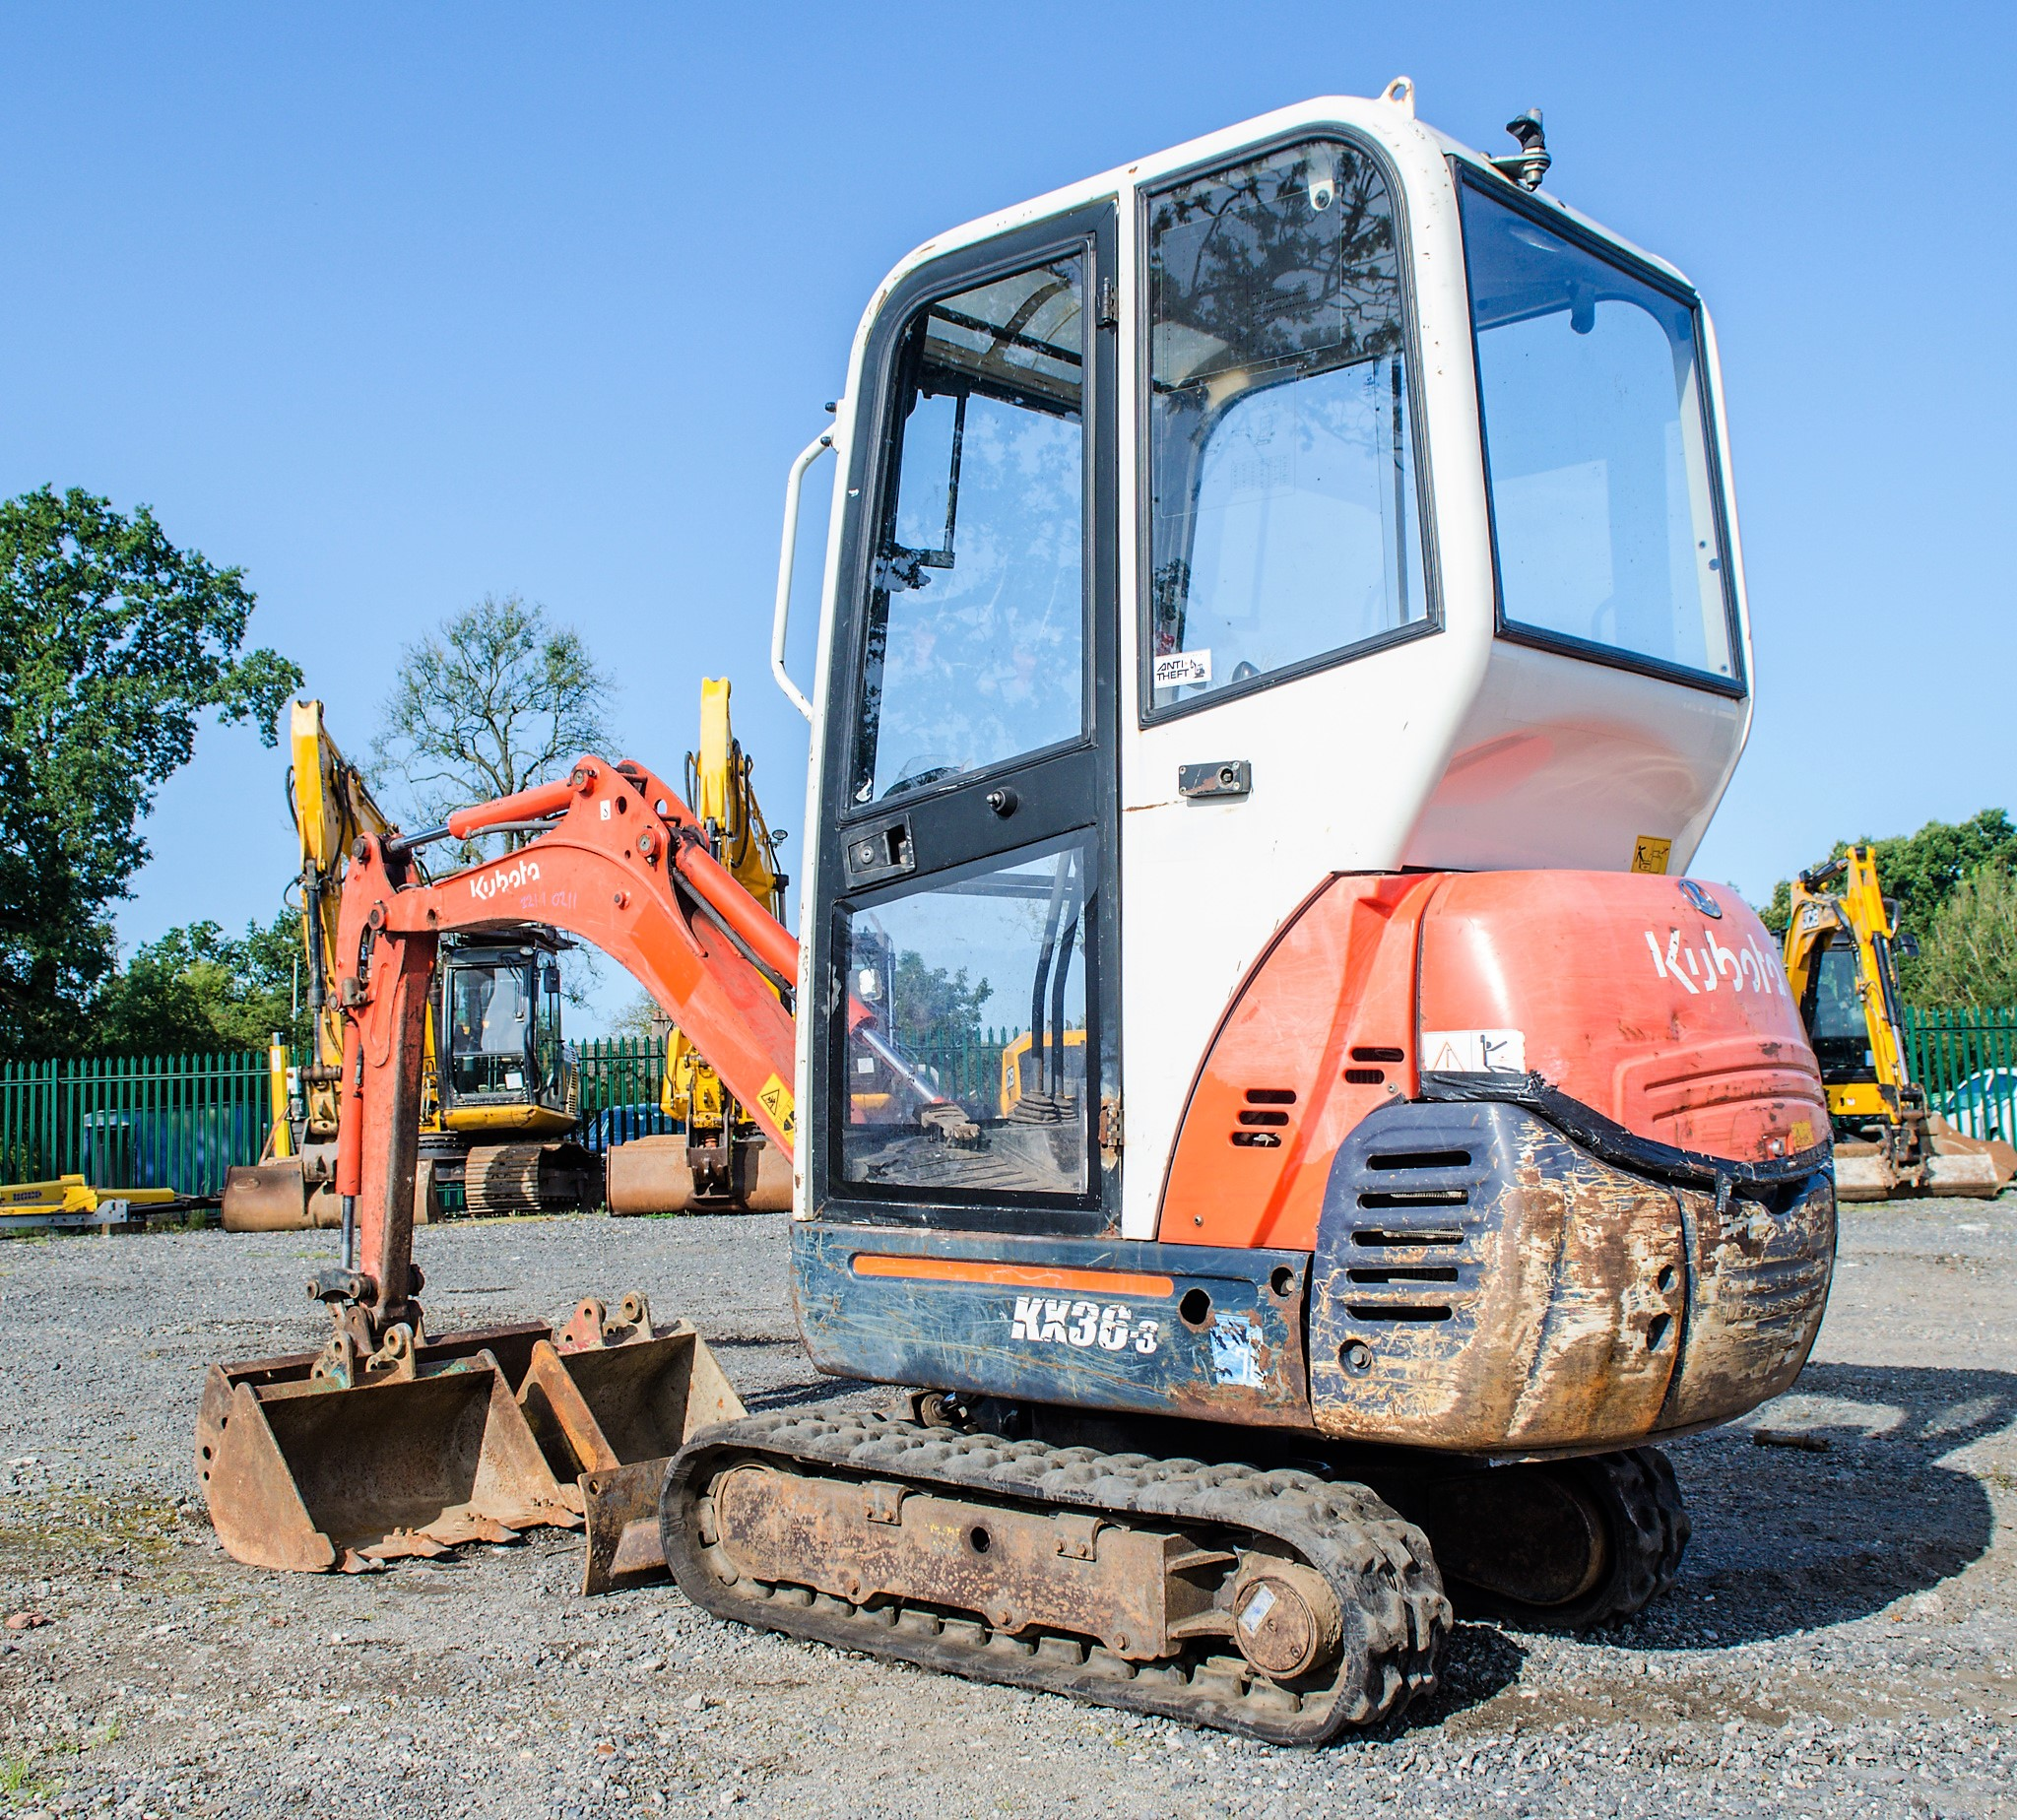 Kubota KX36-3 1.5 tonne rubber tracked mini excavator Year: 2007 S/N: Z077298 Recorded Hours: 4205 - Image 3 of 18